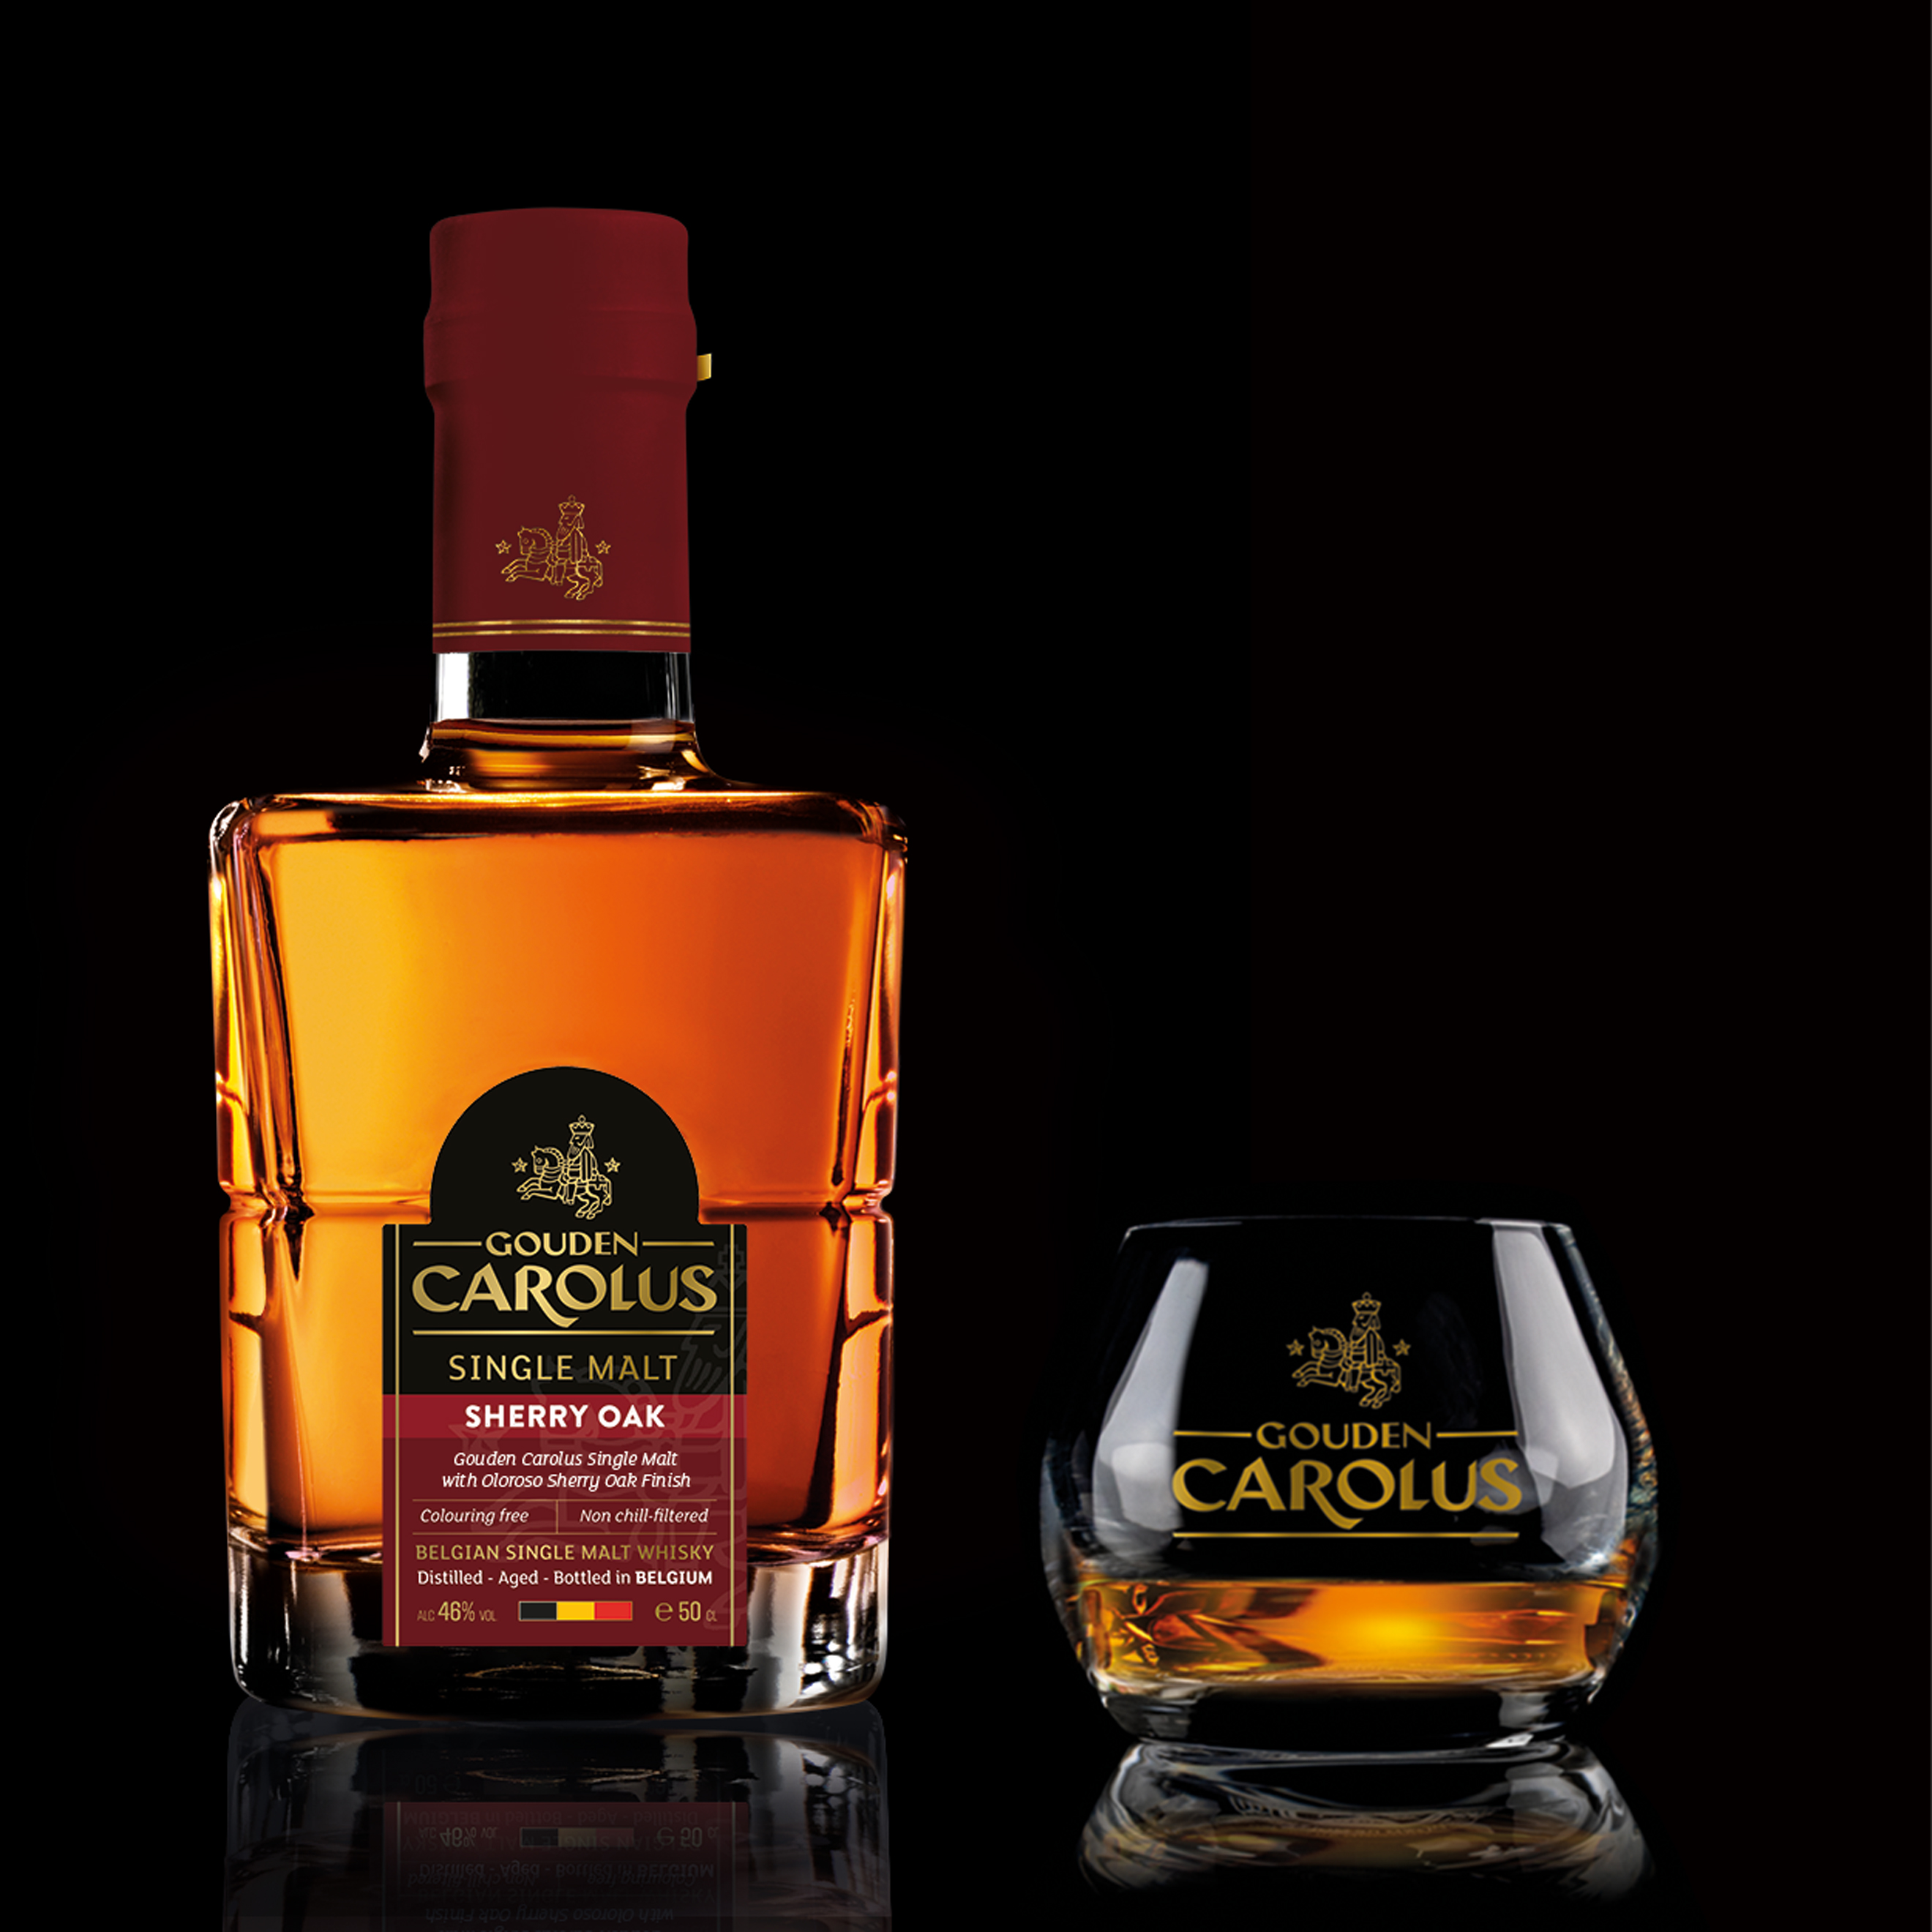 Gouden Carolus Single Malt Sherry Oak met glas